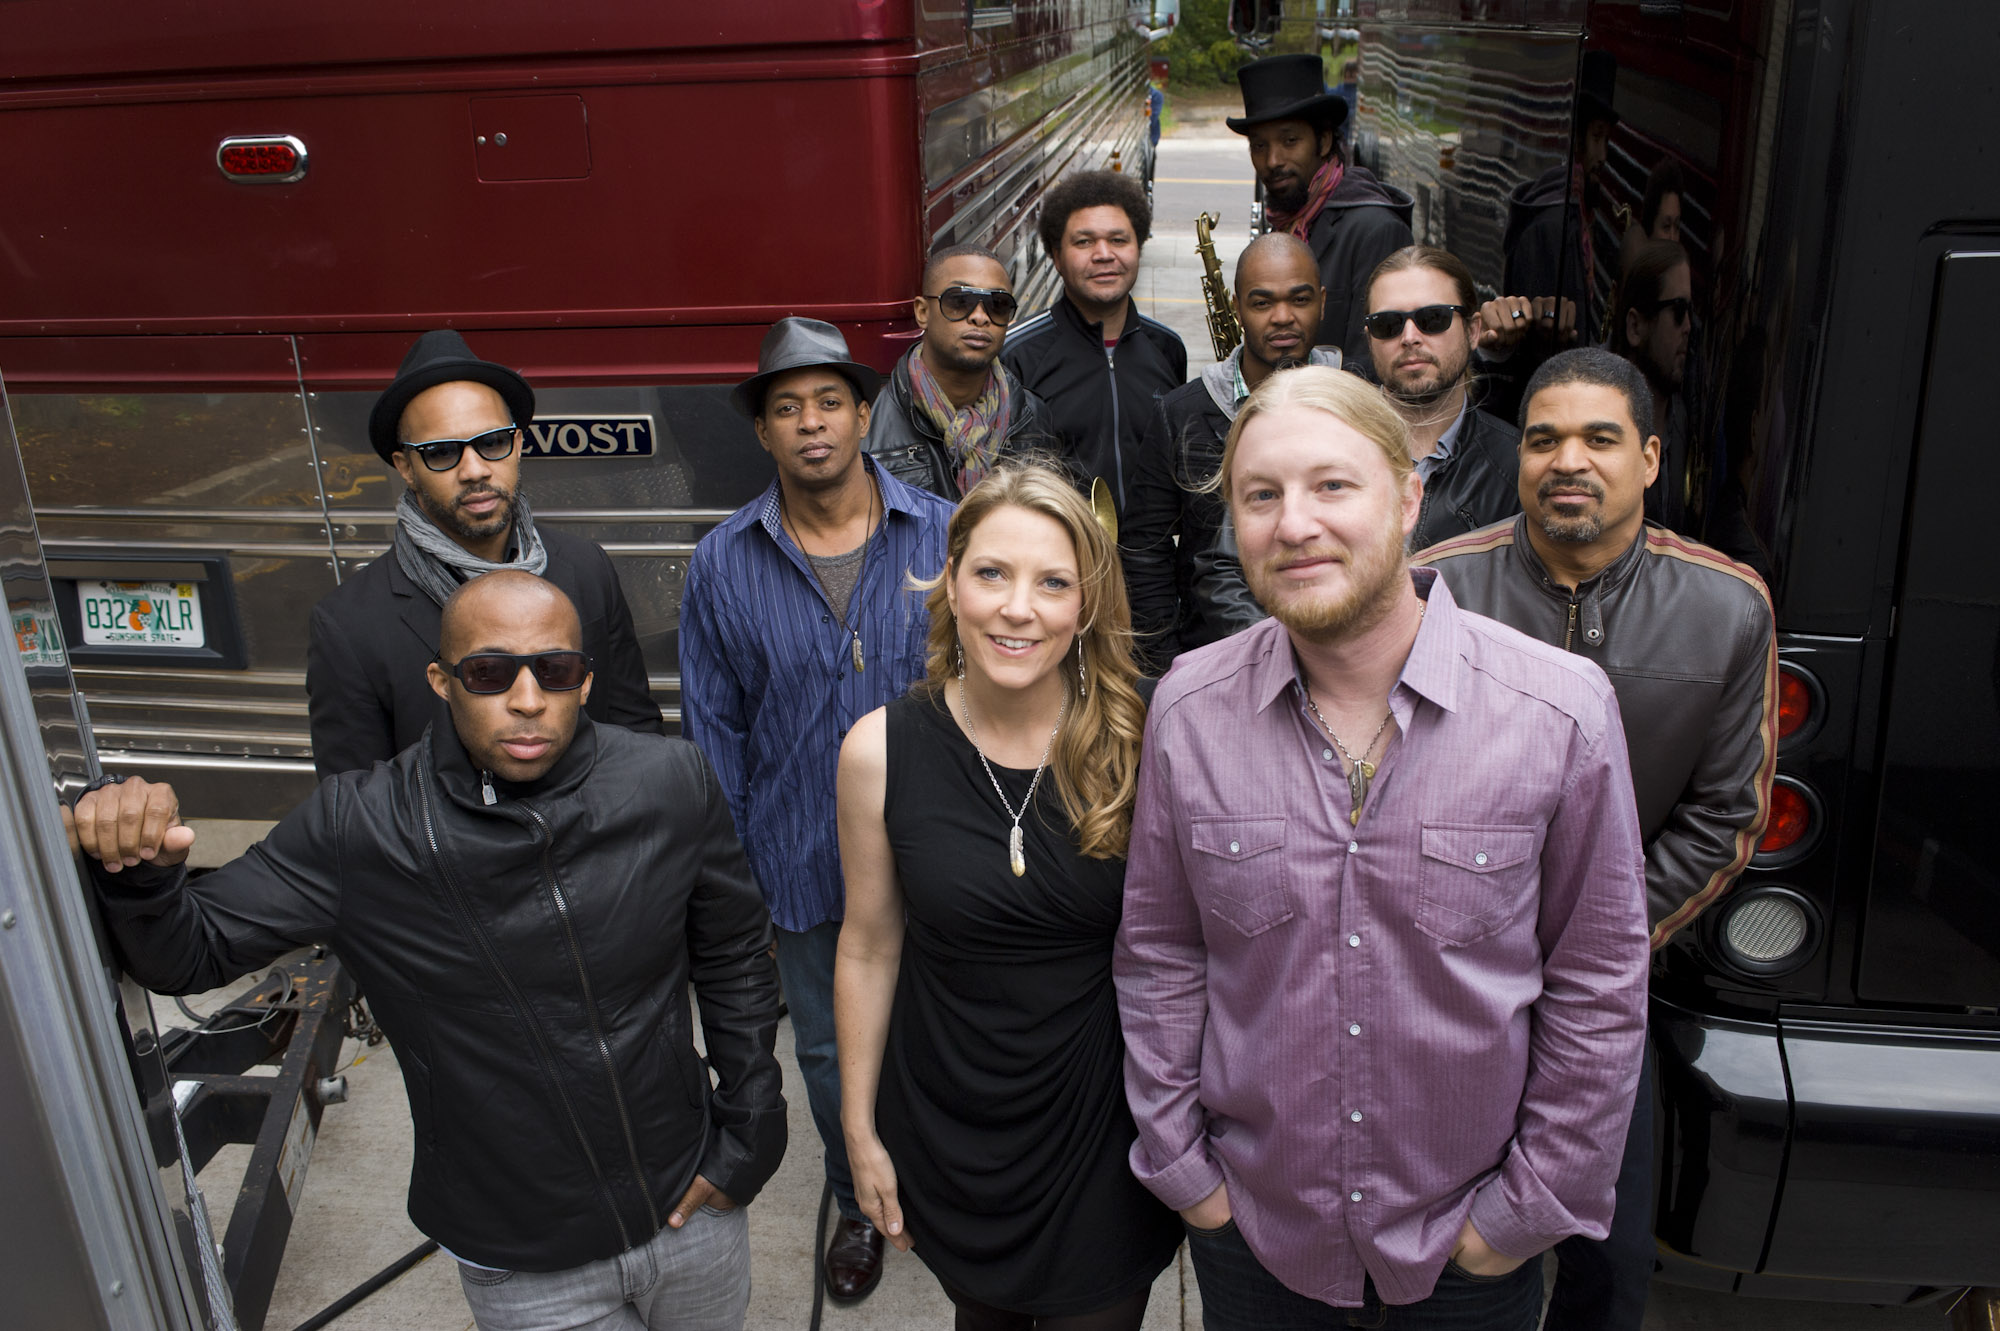 Review: Tedeschi Trucks Band overpower with talent